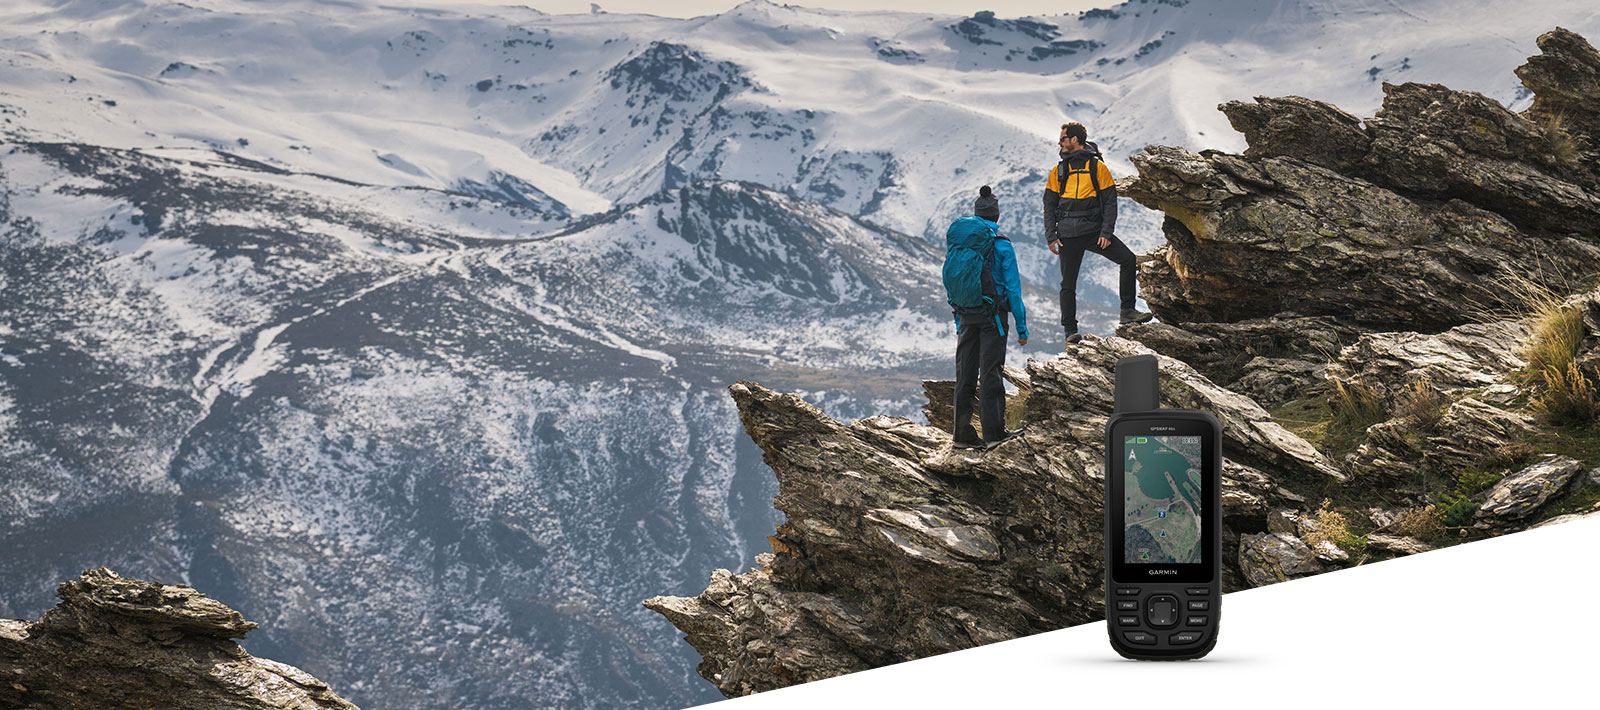 GPSMAP 66s - Premium GPS Handheld with BirdsEye Satellite Imagery Subscription